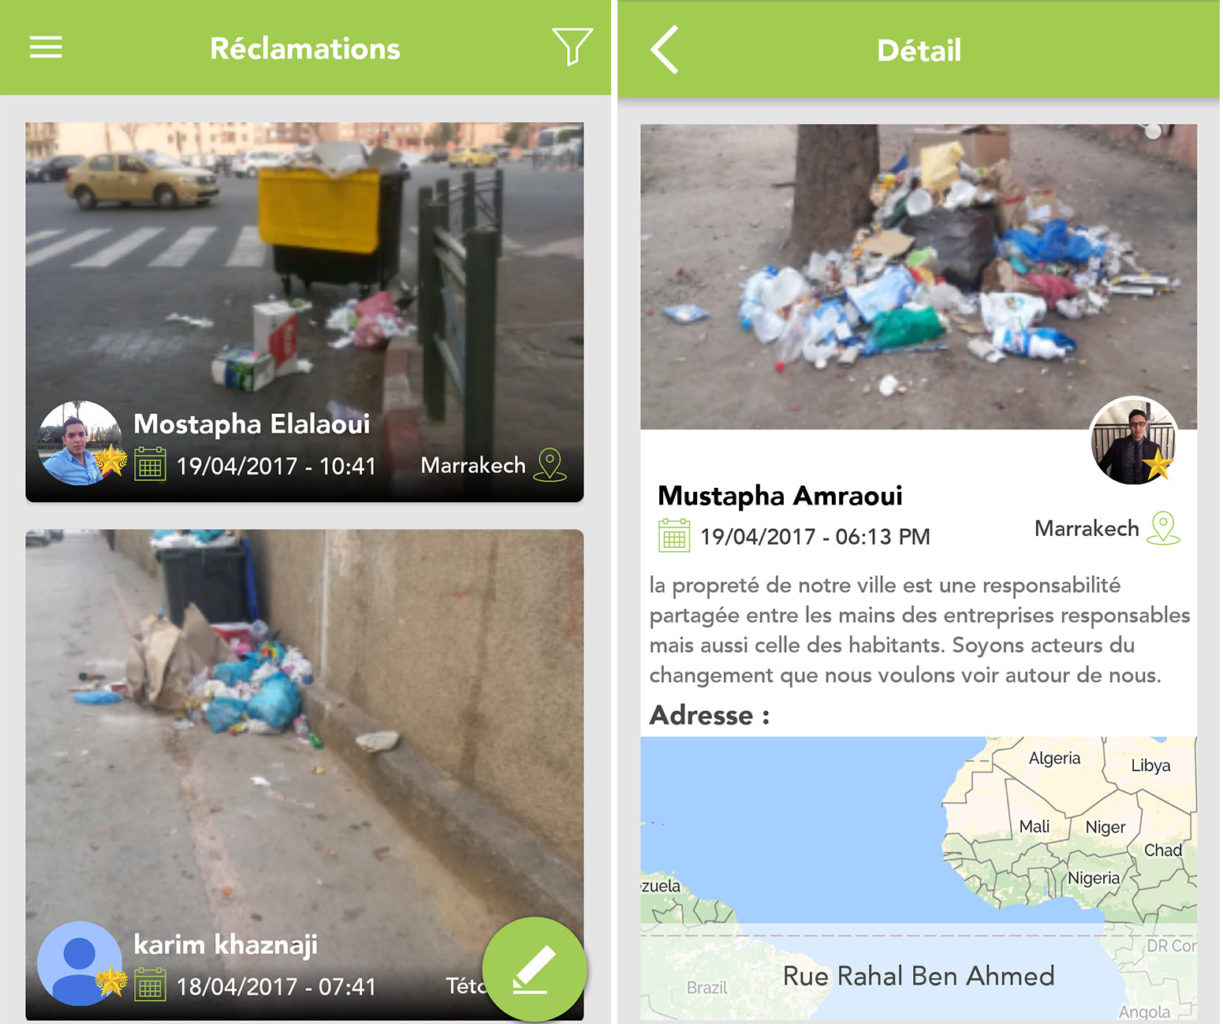 Want a cleaner community? There is an app for that |The Switchers